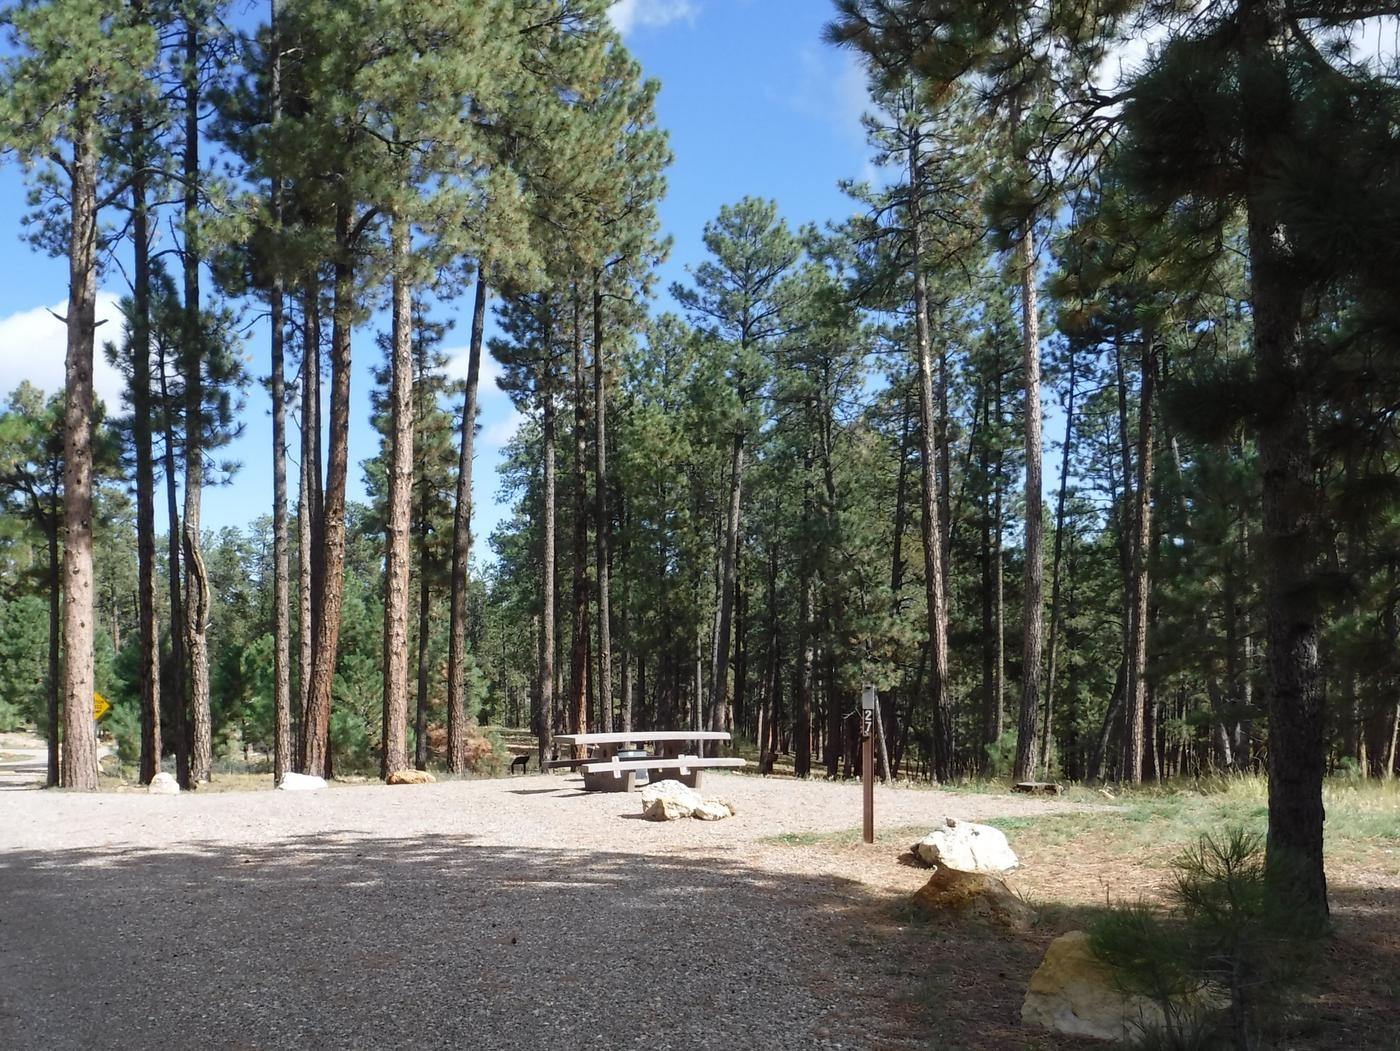 Jacob Lake site #27 featuring entrance, parking, and full camp space view.